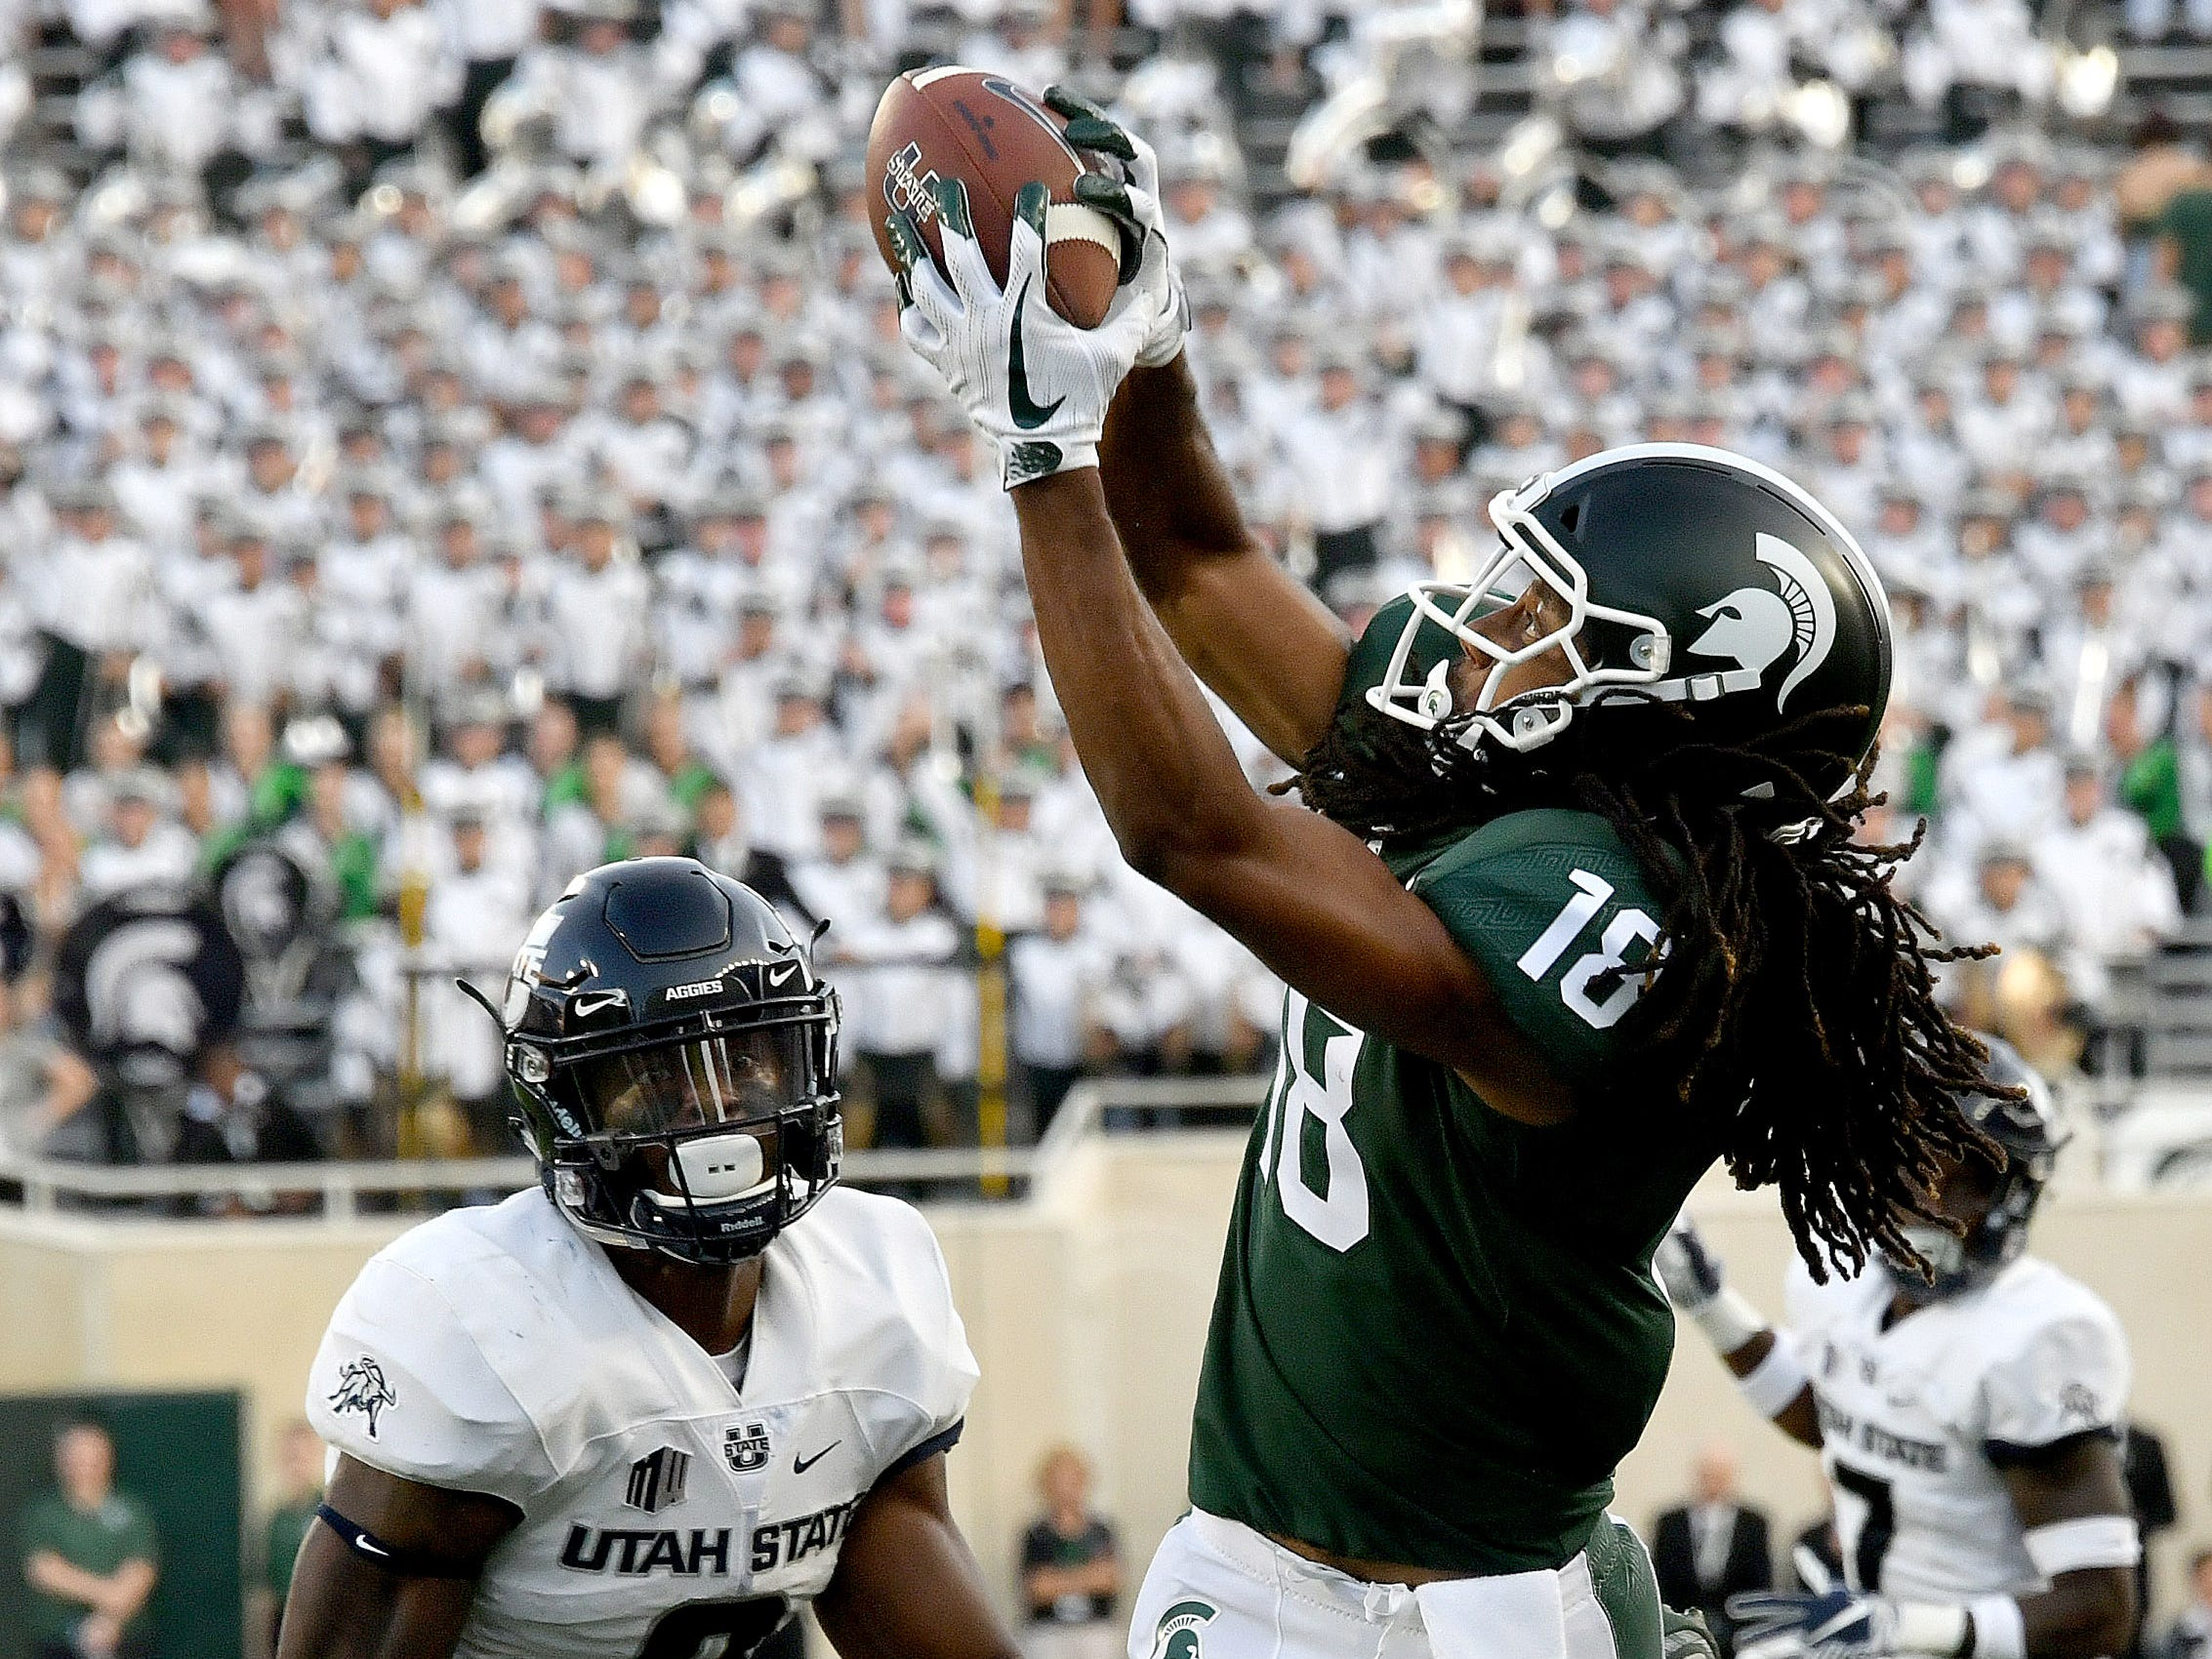 Michigan State WR Felton Davis makes a great catch against Utah State in MSU's season opener at Spartan Stadium in East Lansing on Friday, Aug 31, 2018.  The Spartans finished the 2018 regular season 7-5, fourth in the Big Ten east division. They play Oregon in the Redbox Bowl on Dec. 31st.